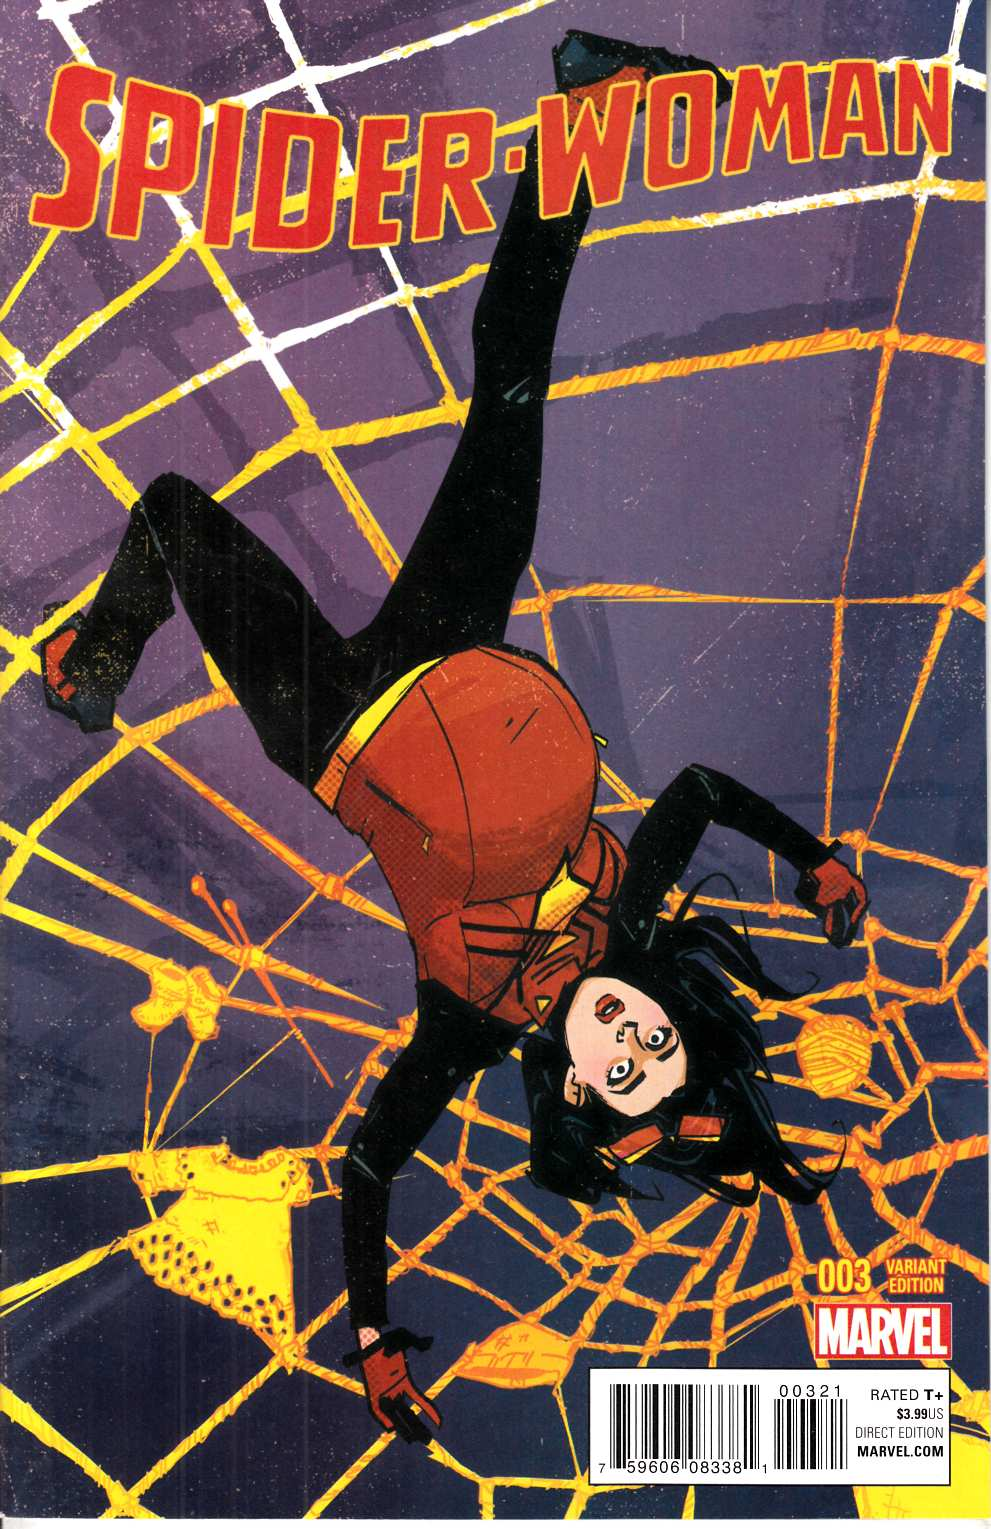 Spider-Woman #3 Wu Variant Cover [Marvel Comic] THUMBNAIL